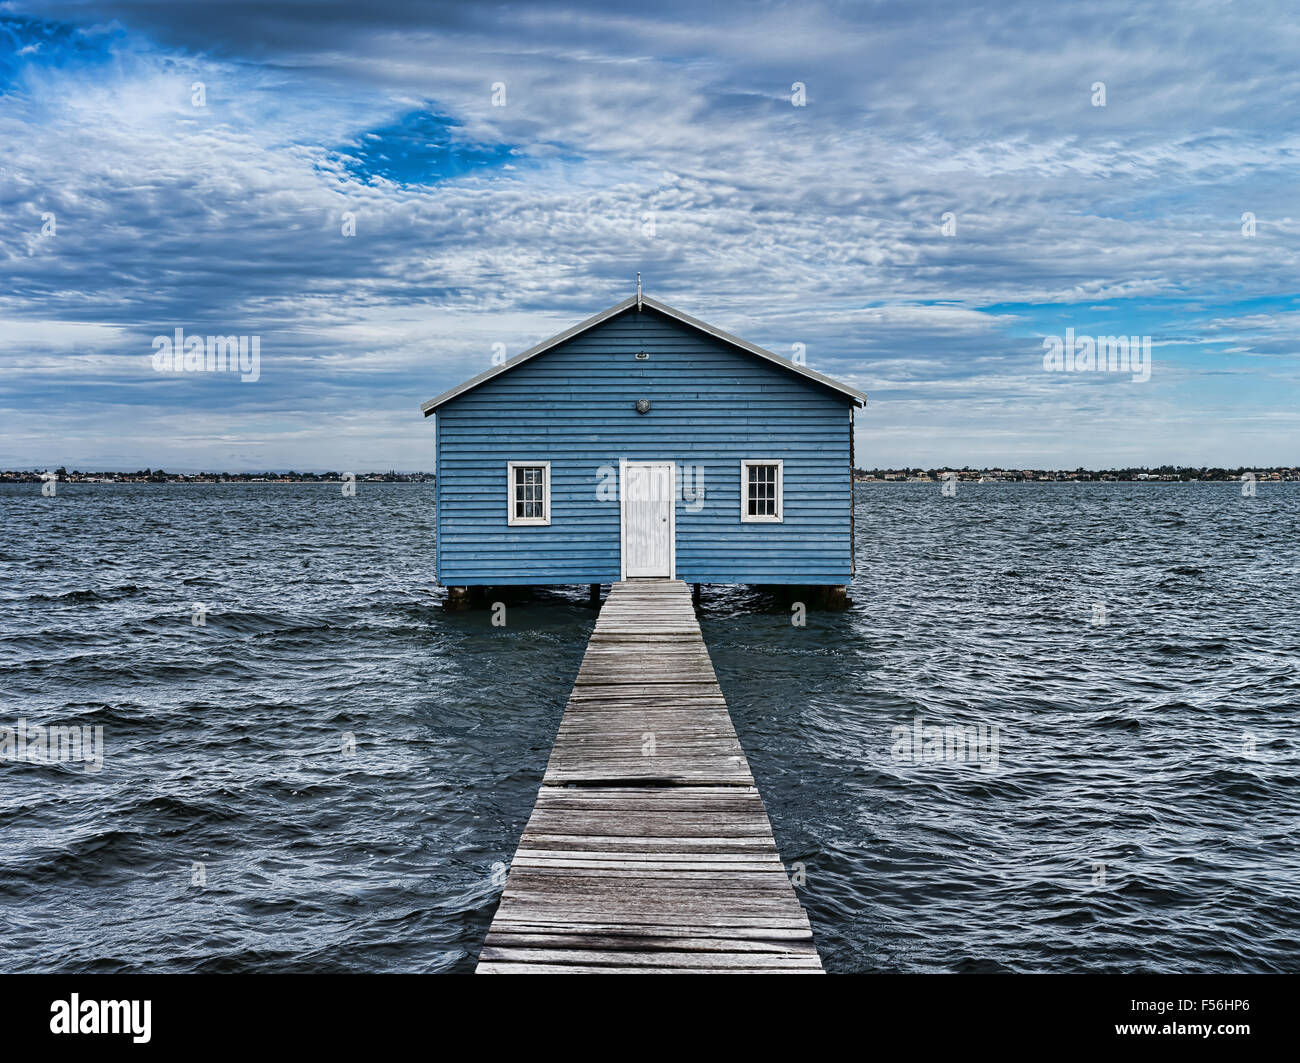 Crawley Boat House On The Swan River Perth Western Australia - Stock Image